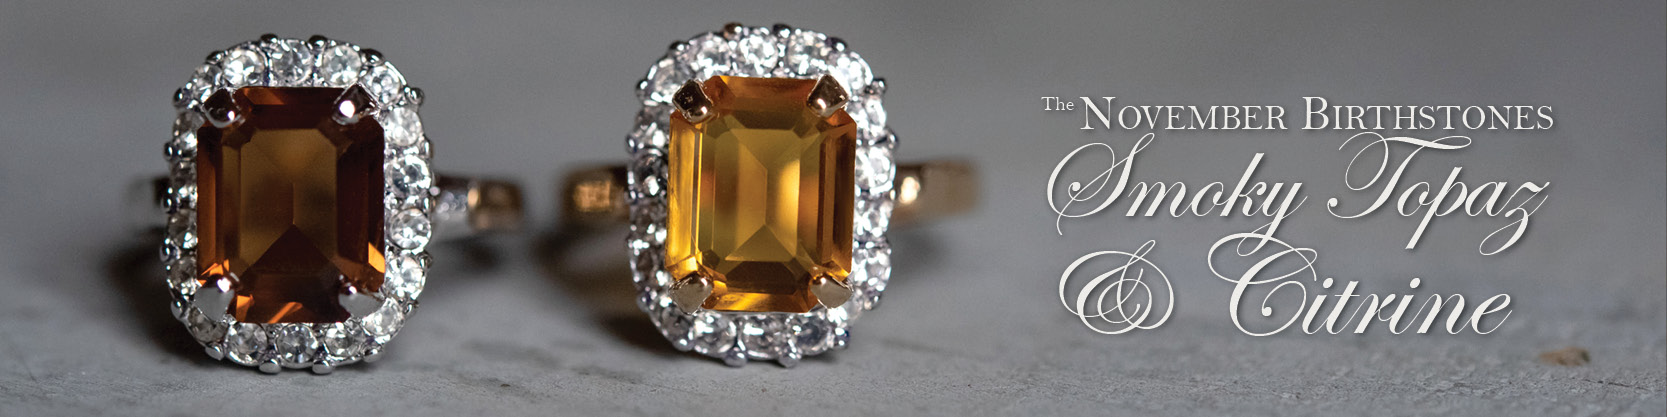 November birthstone vintage topaz and citrine rings - cubic zirconia - clear Swarovski crystals